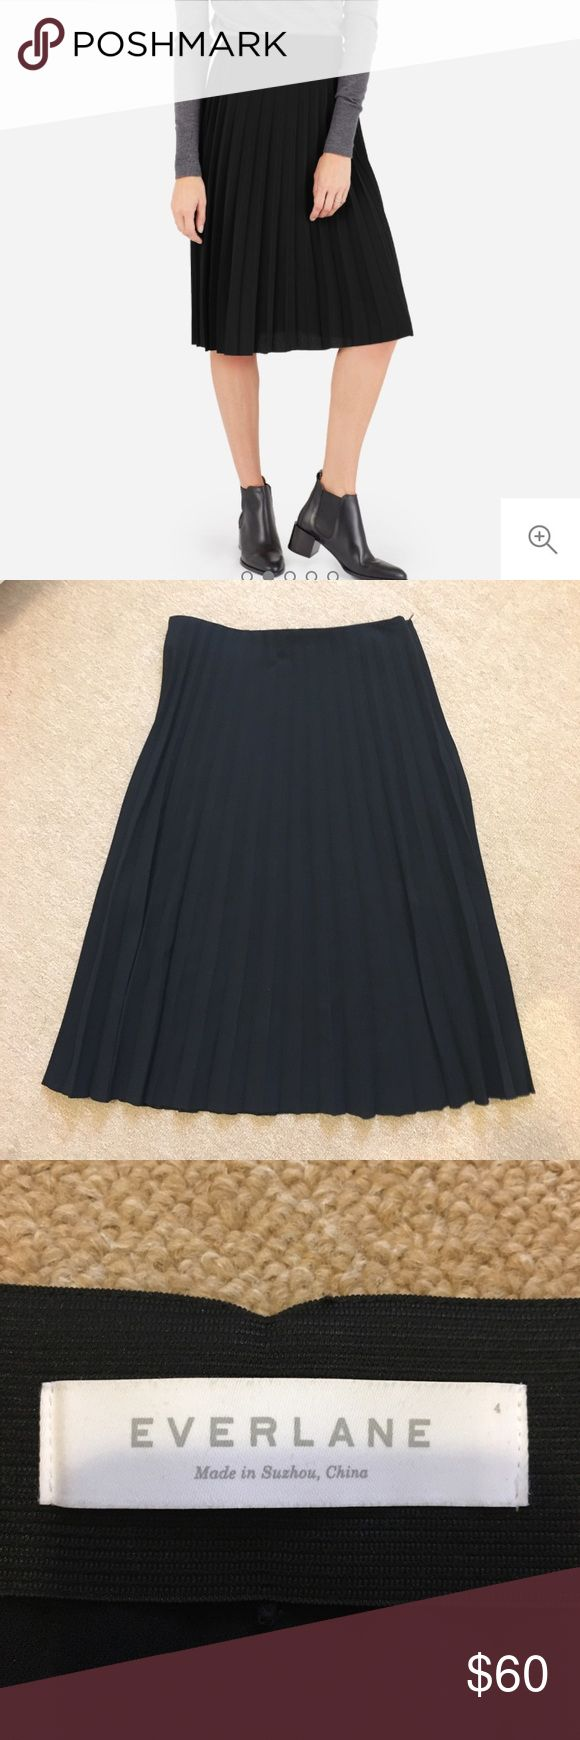 Everlane Black Pleated Midi Skirt Super versatile and can be dressed up or down! In mint condition, only wore it a few times. Zipper closure with hidden elastic waistband. Everlane Skirts Midi